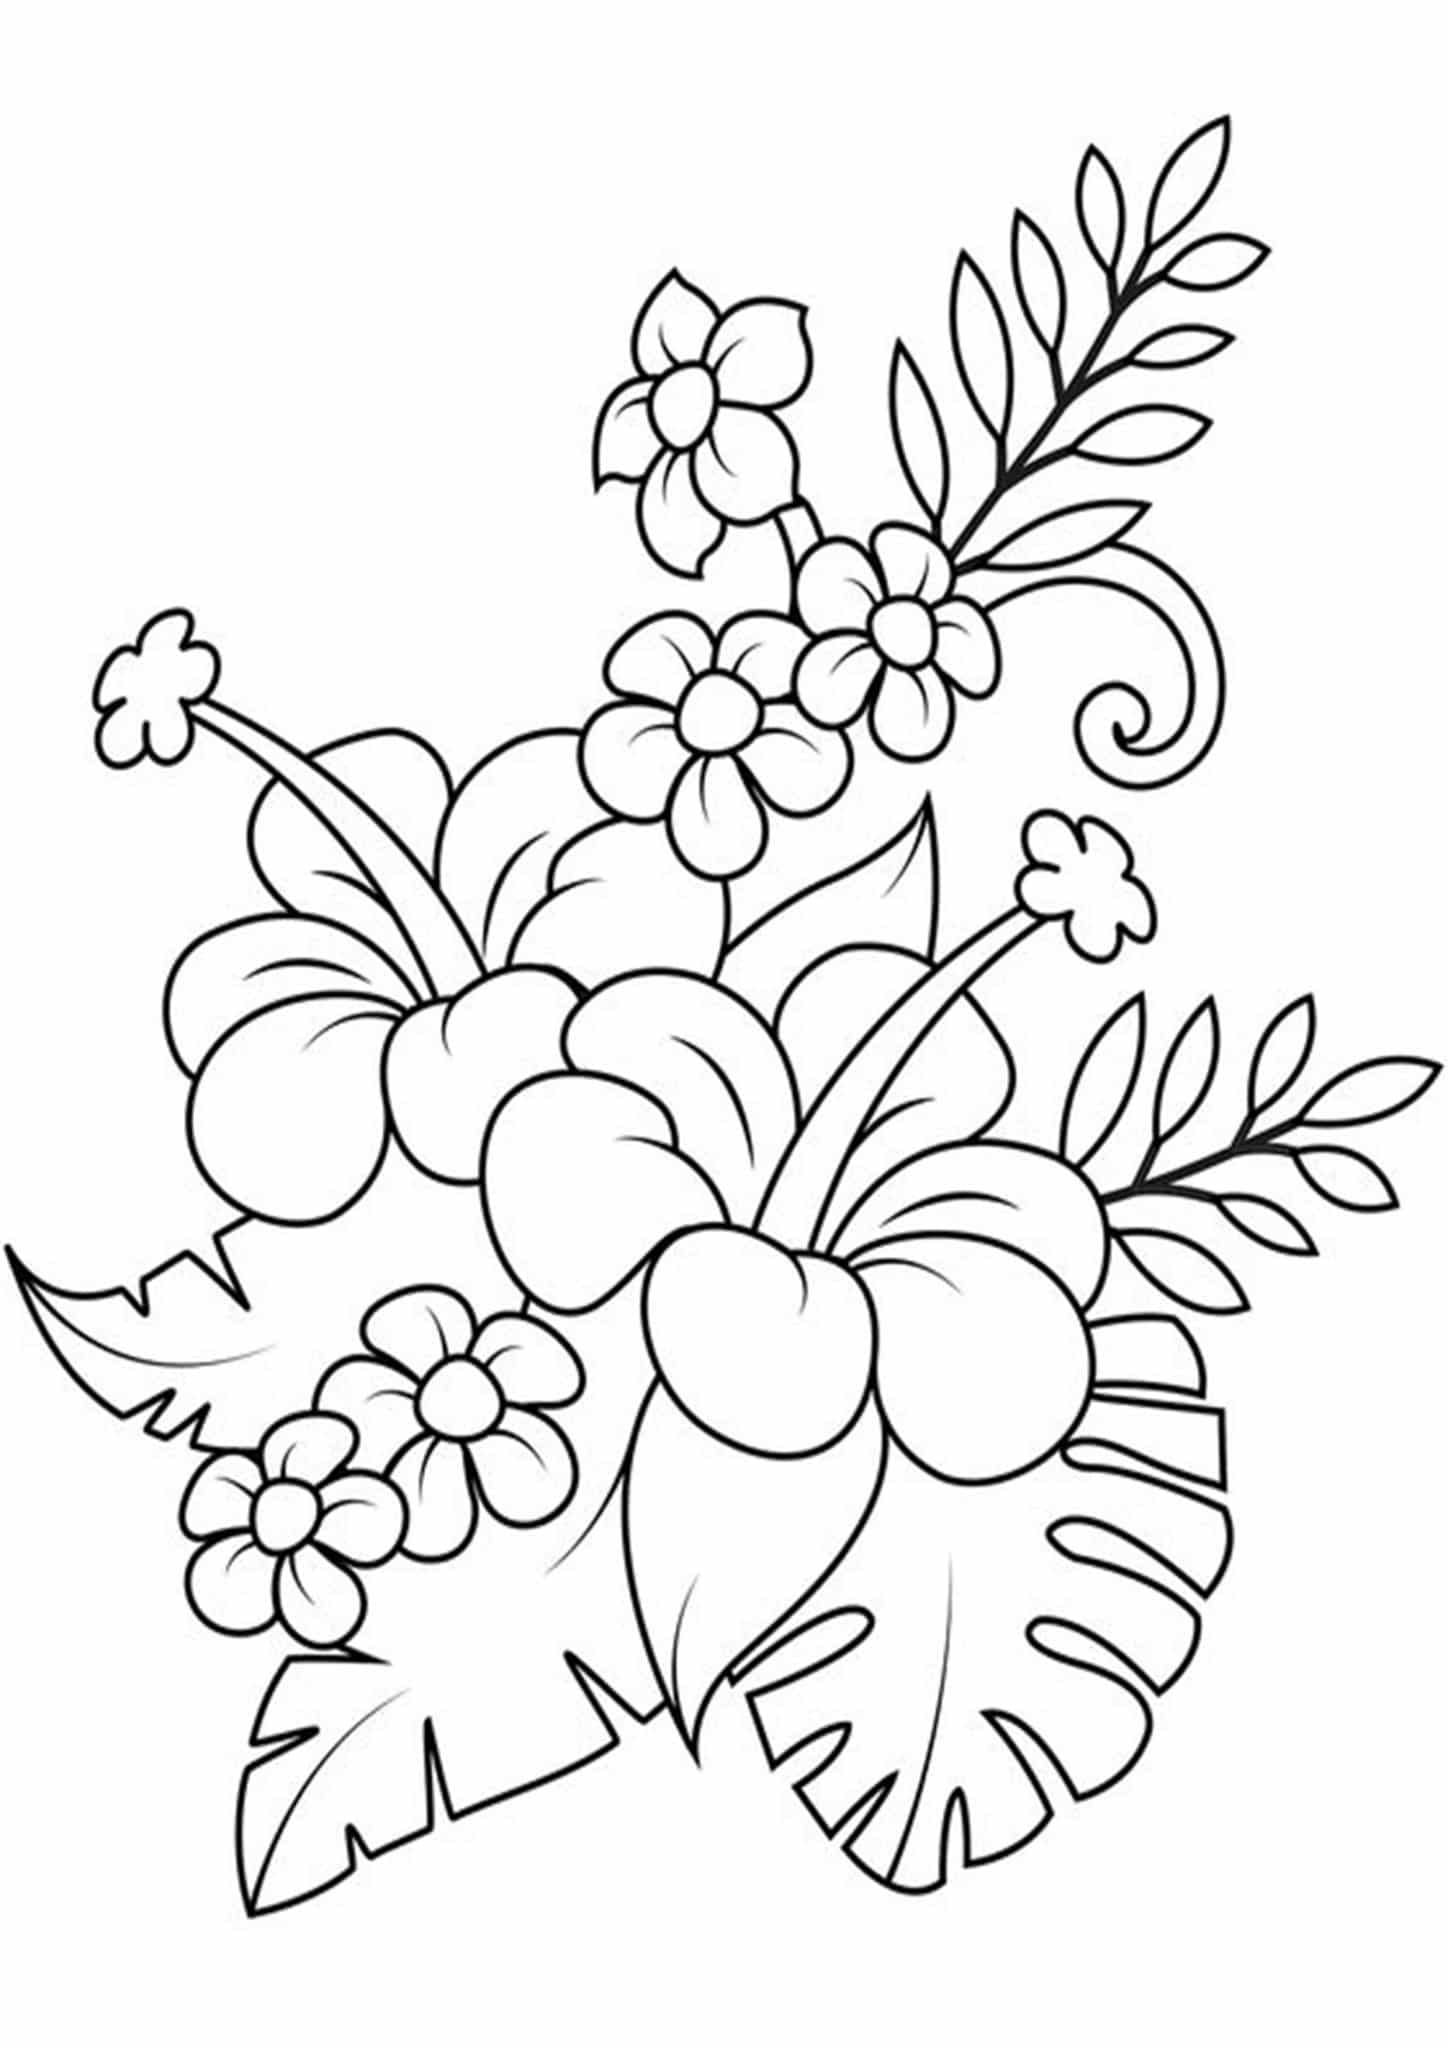 orchid coloring pages coloring town pages orchid coloring